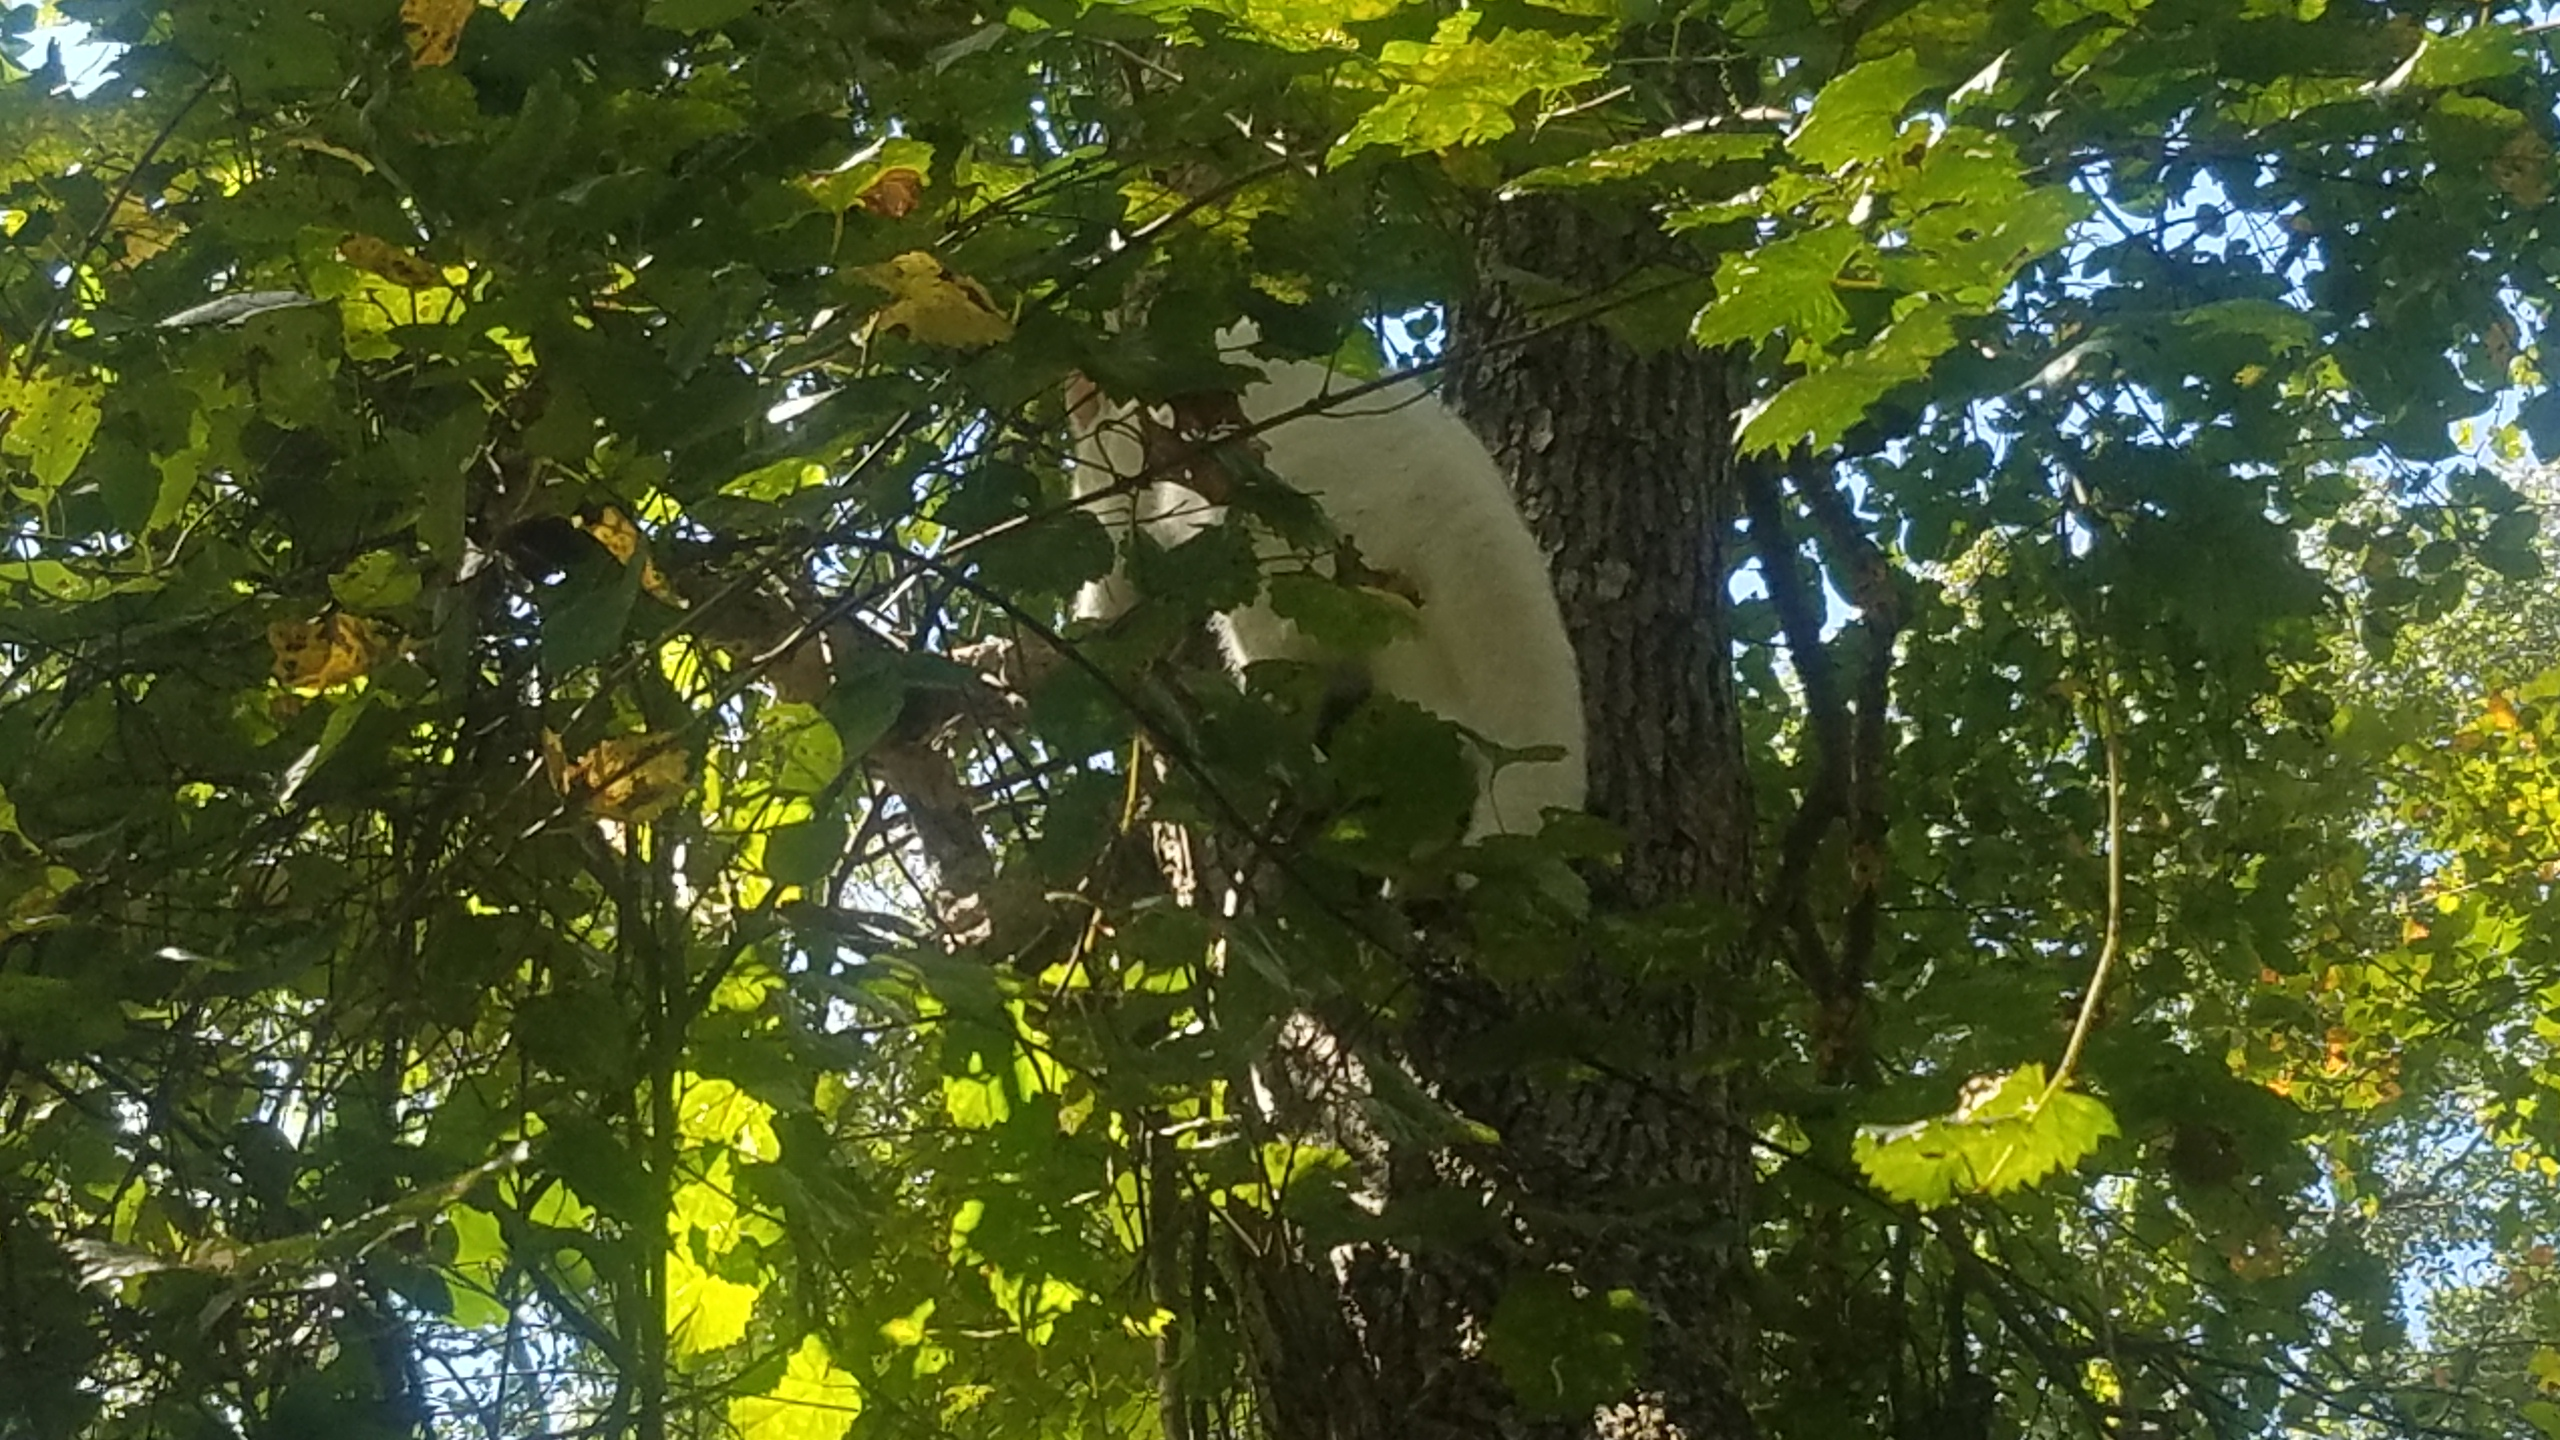 2560x1440 In crook of tree, Cat, in Dog treed cat, by John S. Quarterman, for OkraParadiseFarms.com, 29 August 2018